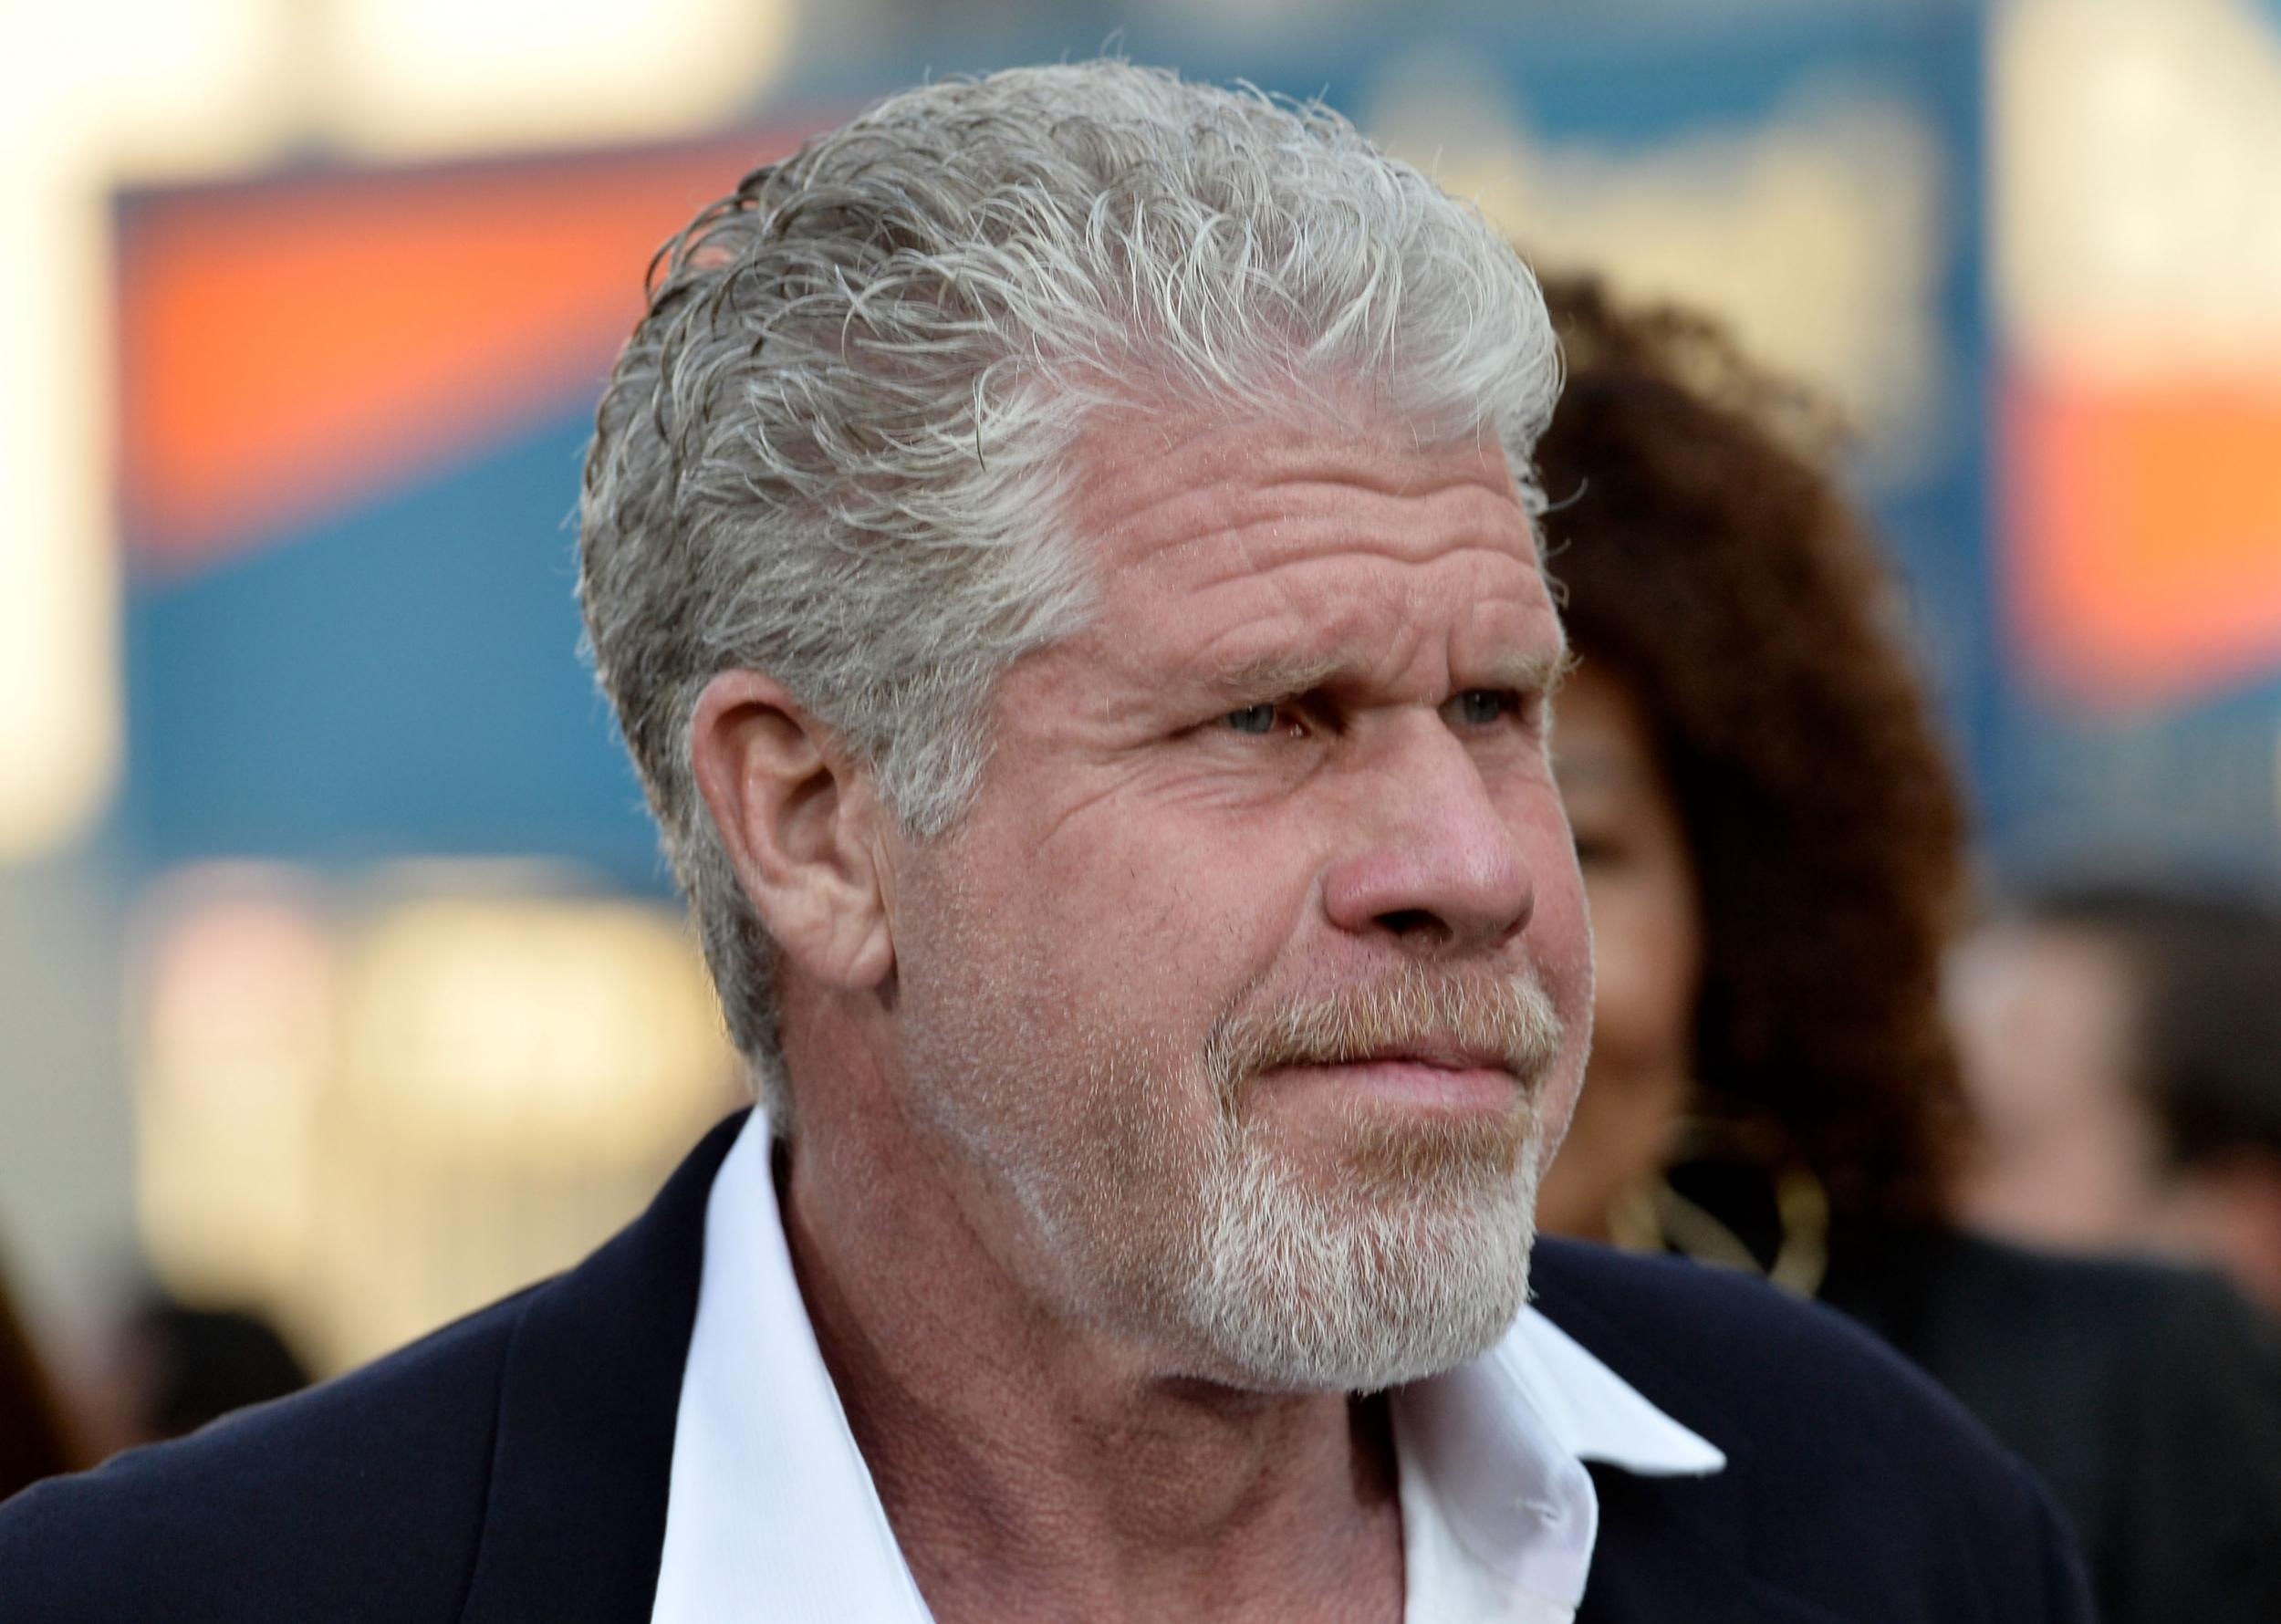 ron perlman opal stoneron perlman fallout, ron perlman voice, ron perlman height, ron perlman sons of anarchy, ron perlman batou, ron perlman payday 2, ron perlman instagram, ron perlman star wars, ron perlman 2017, ron perlman family, ron perlman wiki, ron perlman yeti, ron perlman alien 4, ron perlman opal stone, ron perlman singing, ron perlman charmed, ron perlman adventure time, ron perlman audiobooks, ron perlman new series, ron perlman easy street pdf